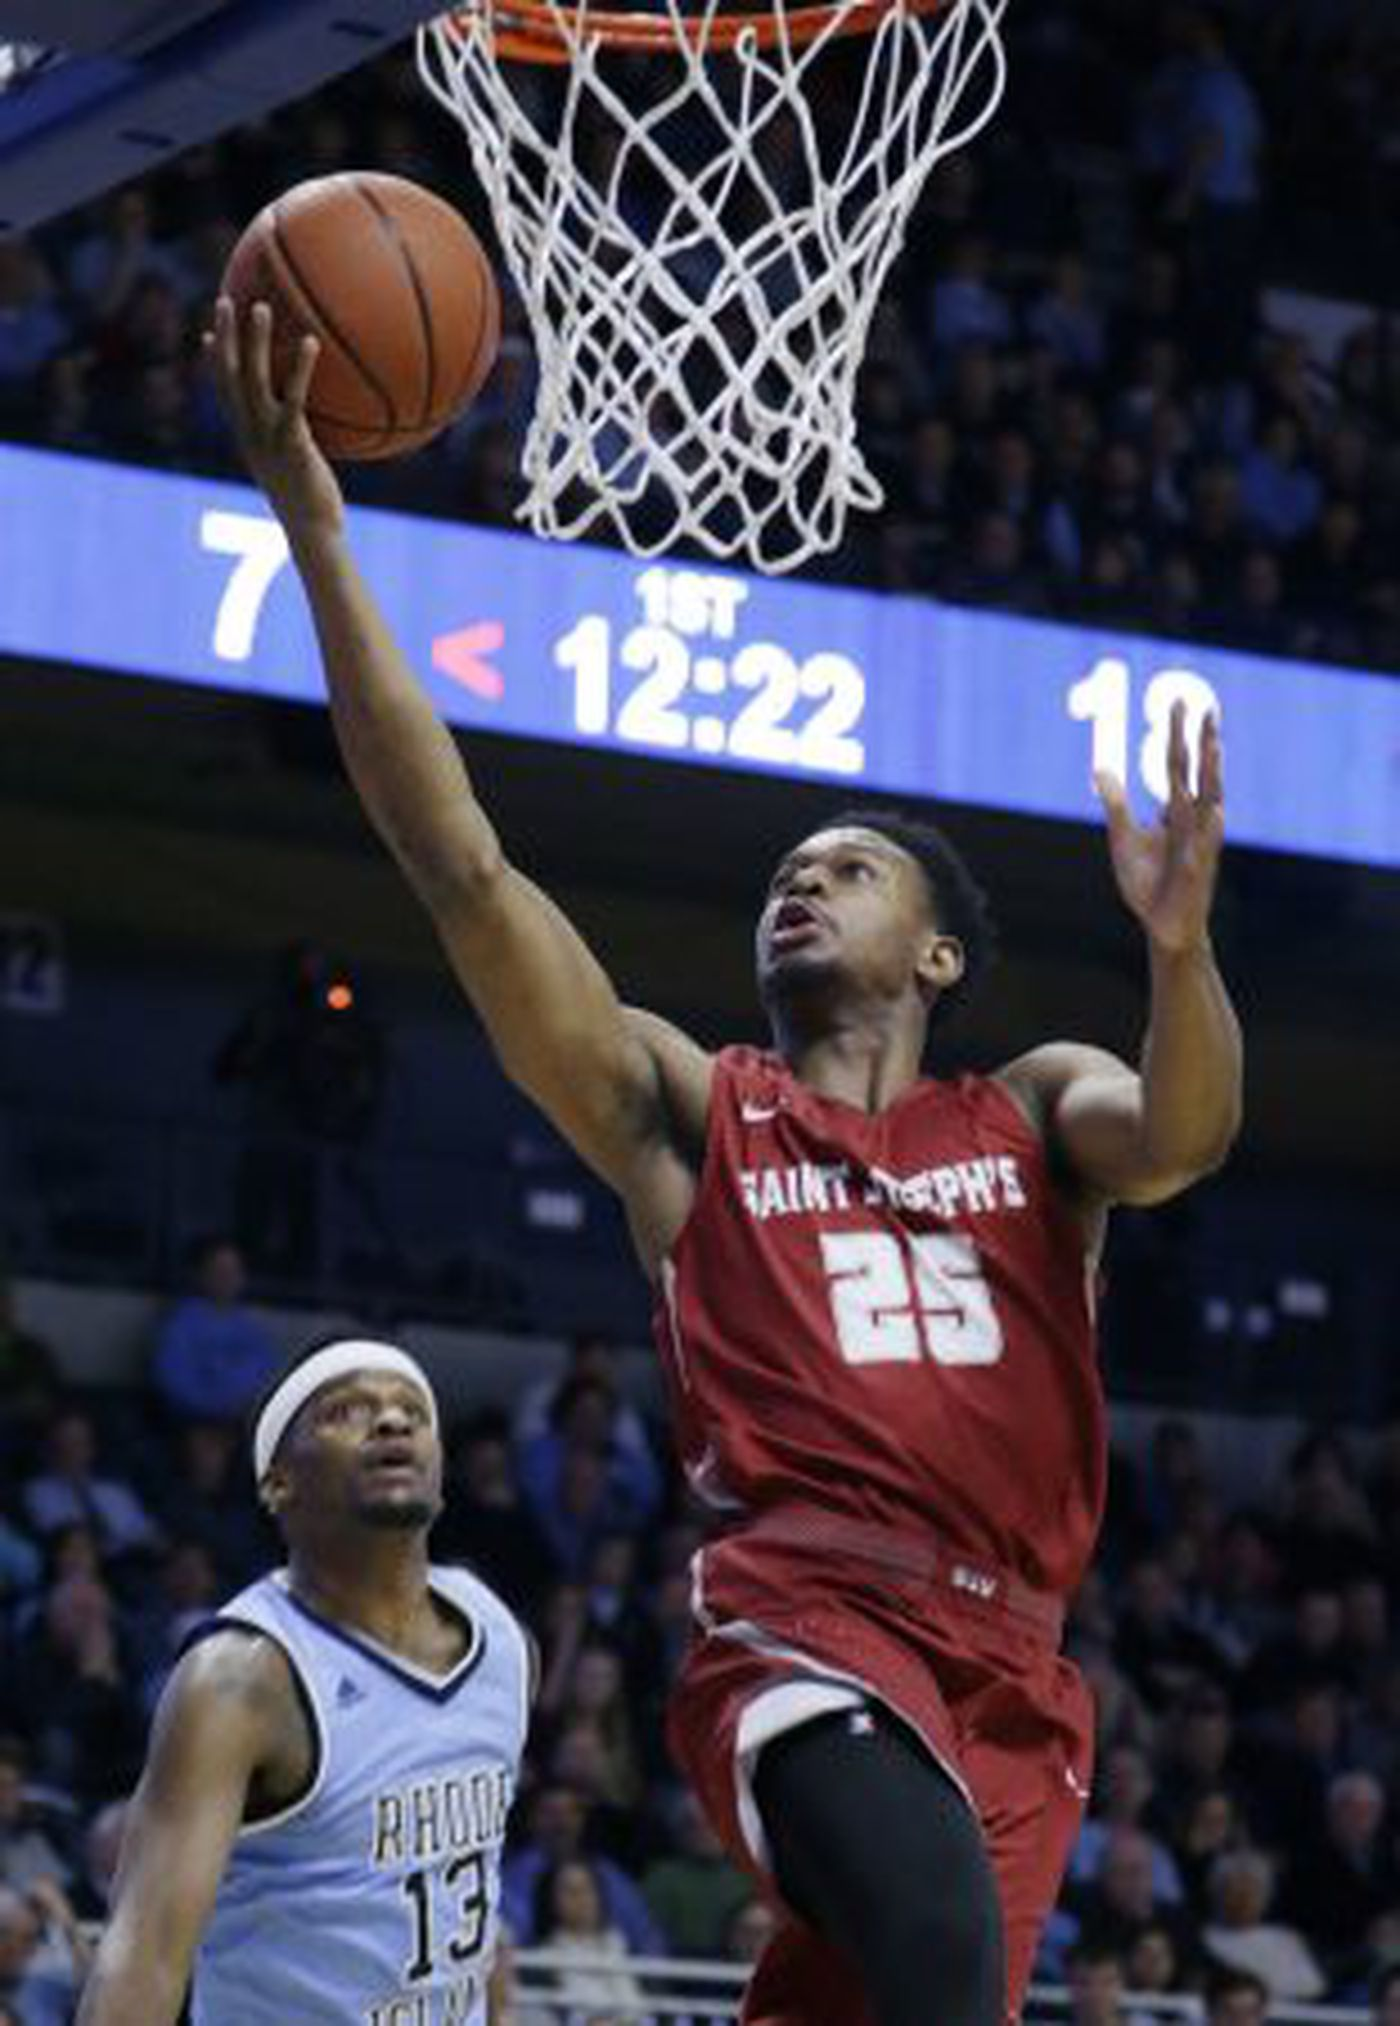 Rendell: Super time for March Madness